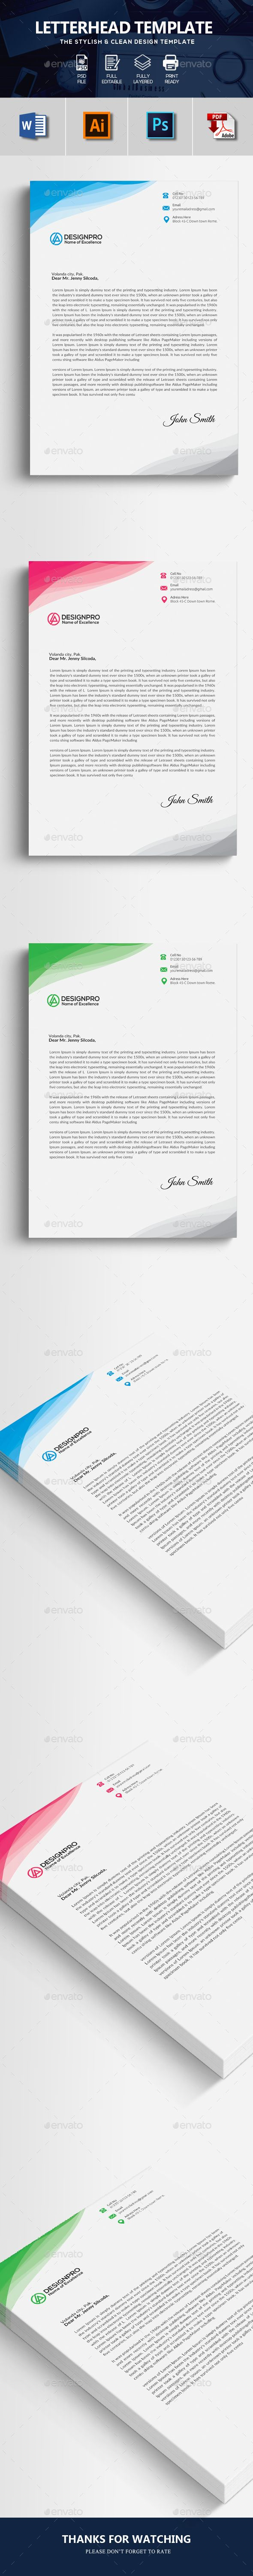 58 best letterheads images on pinterest letterhead stationery letterhead template stationery print templates spiritdancerdesigns Choice Image